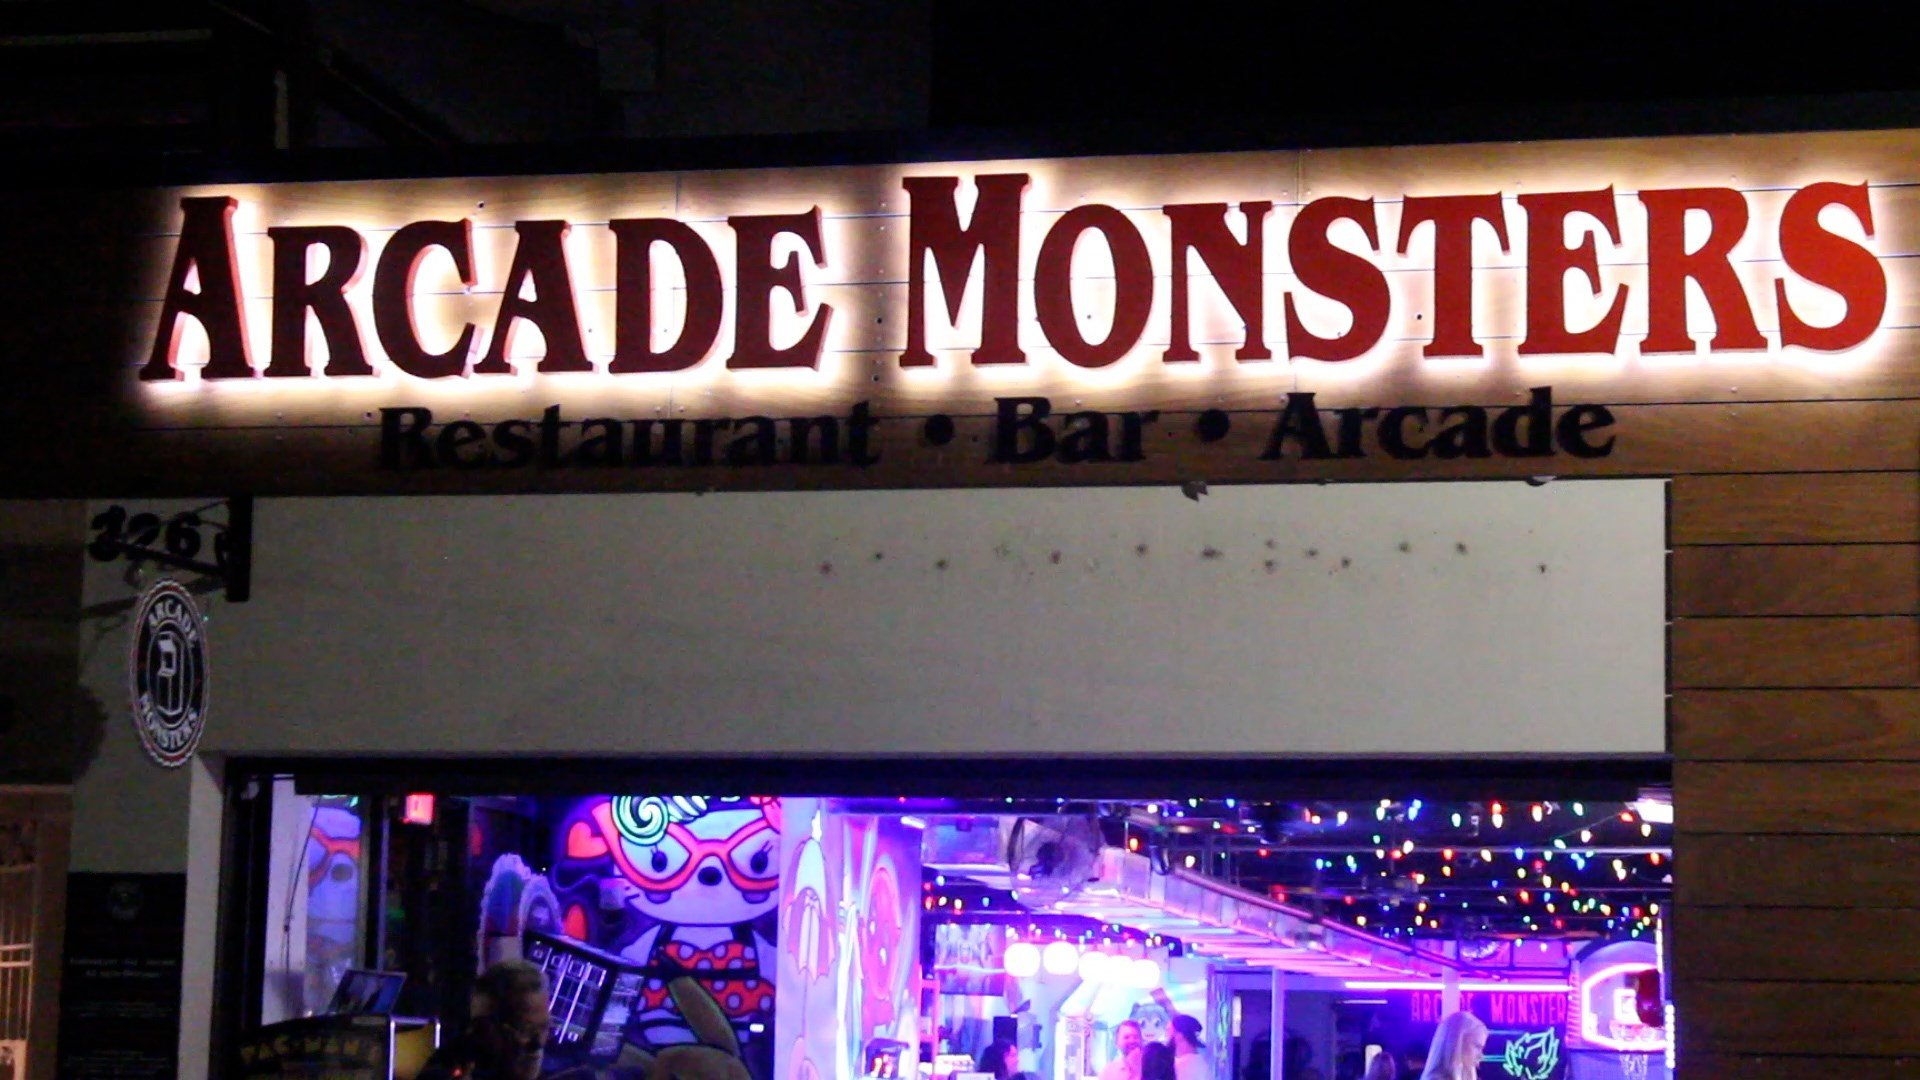 Feel Good Friday: Arcade Monsters is revolutionizing how arcades operate